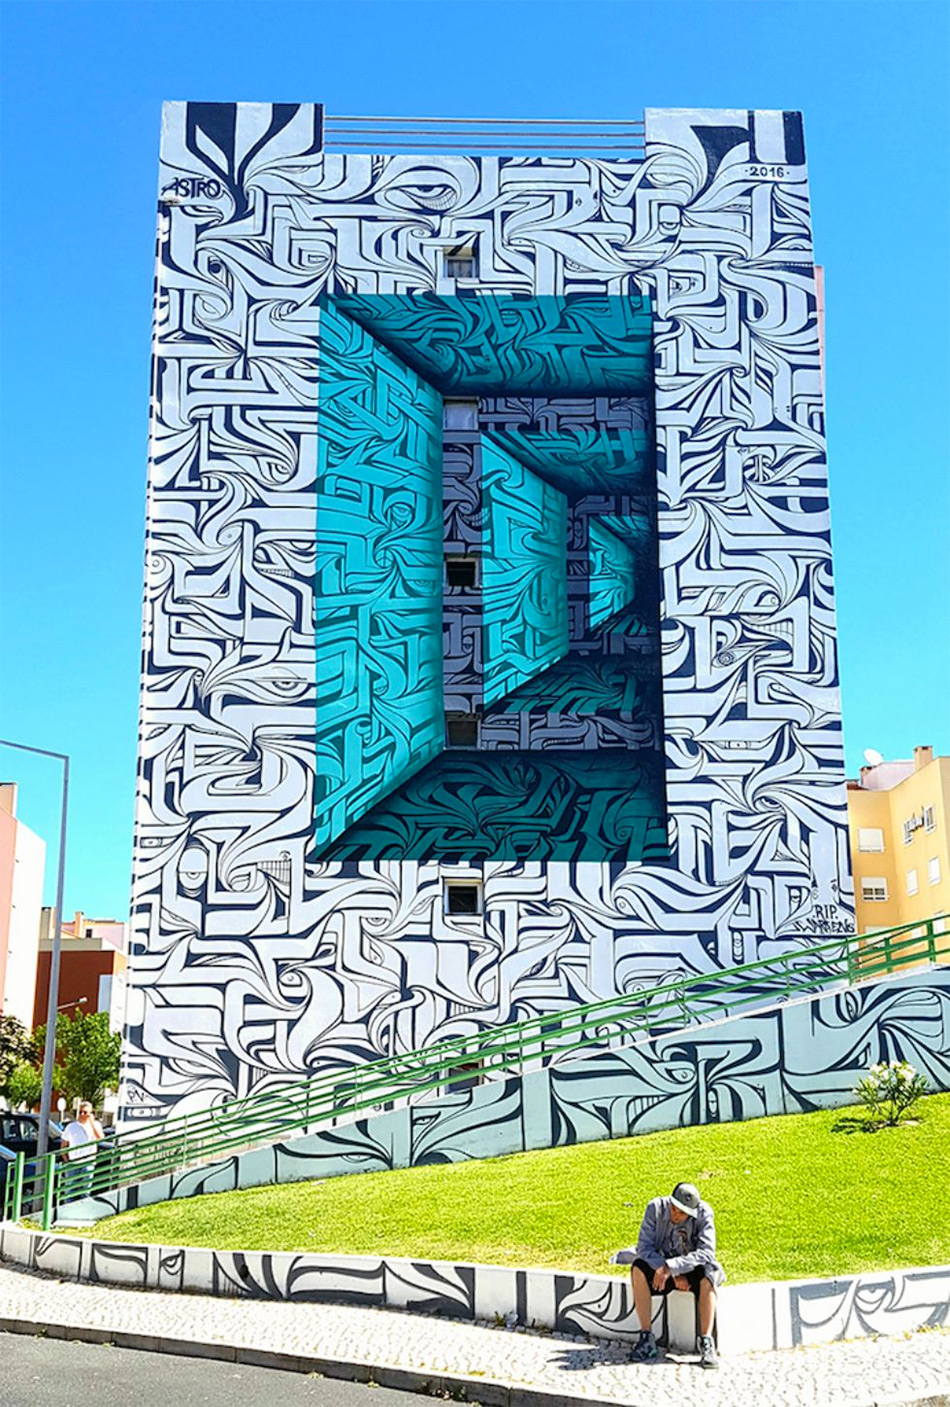 Calligraphic Optical Illusion Murals by Astro | Colossal